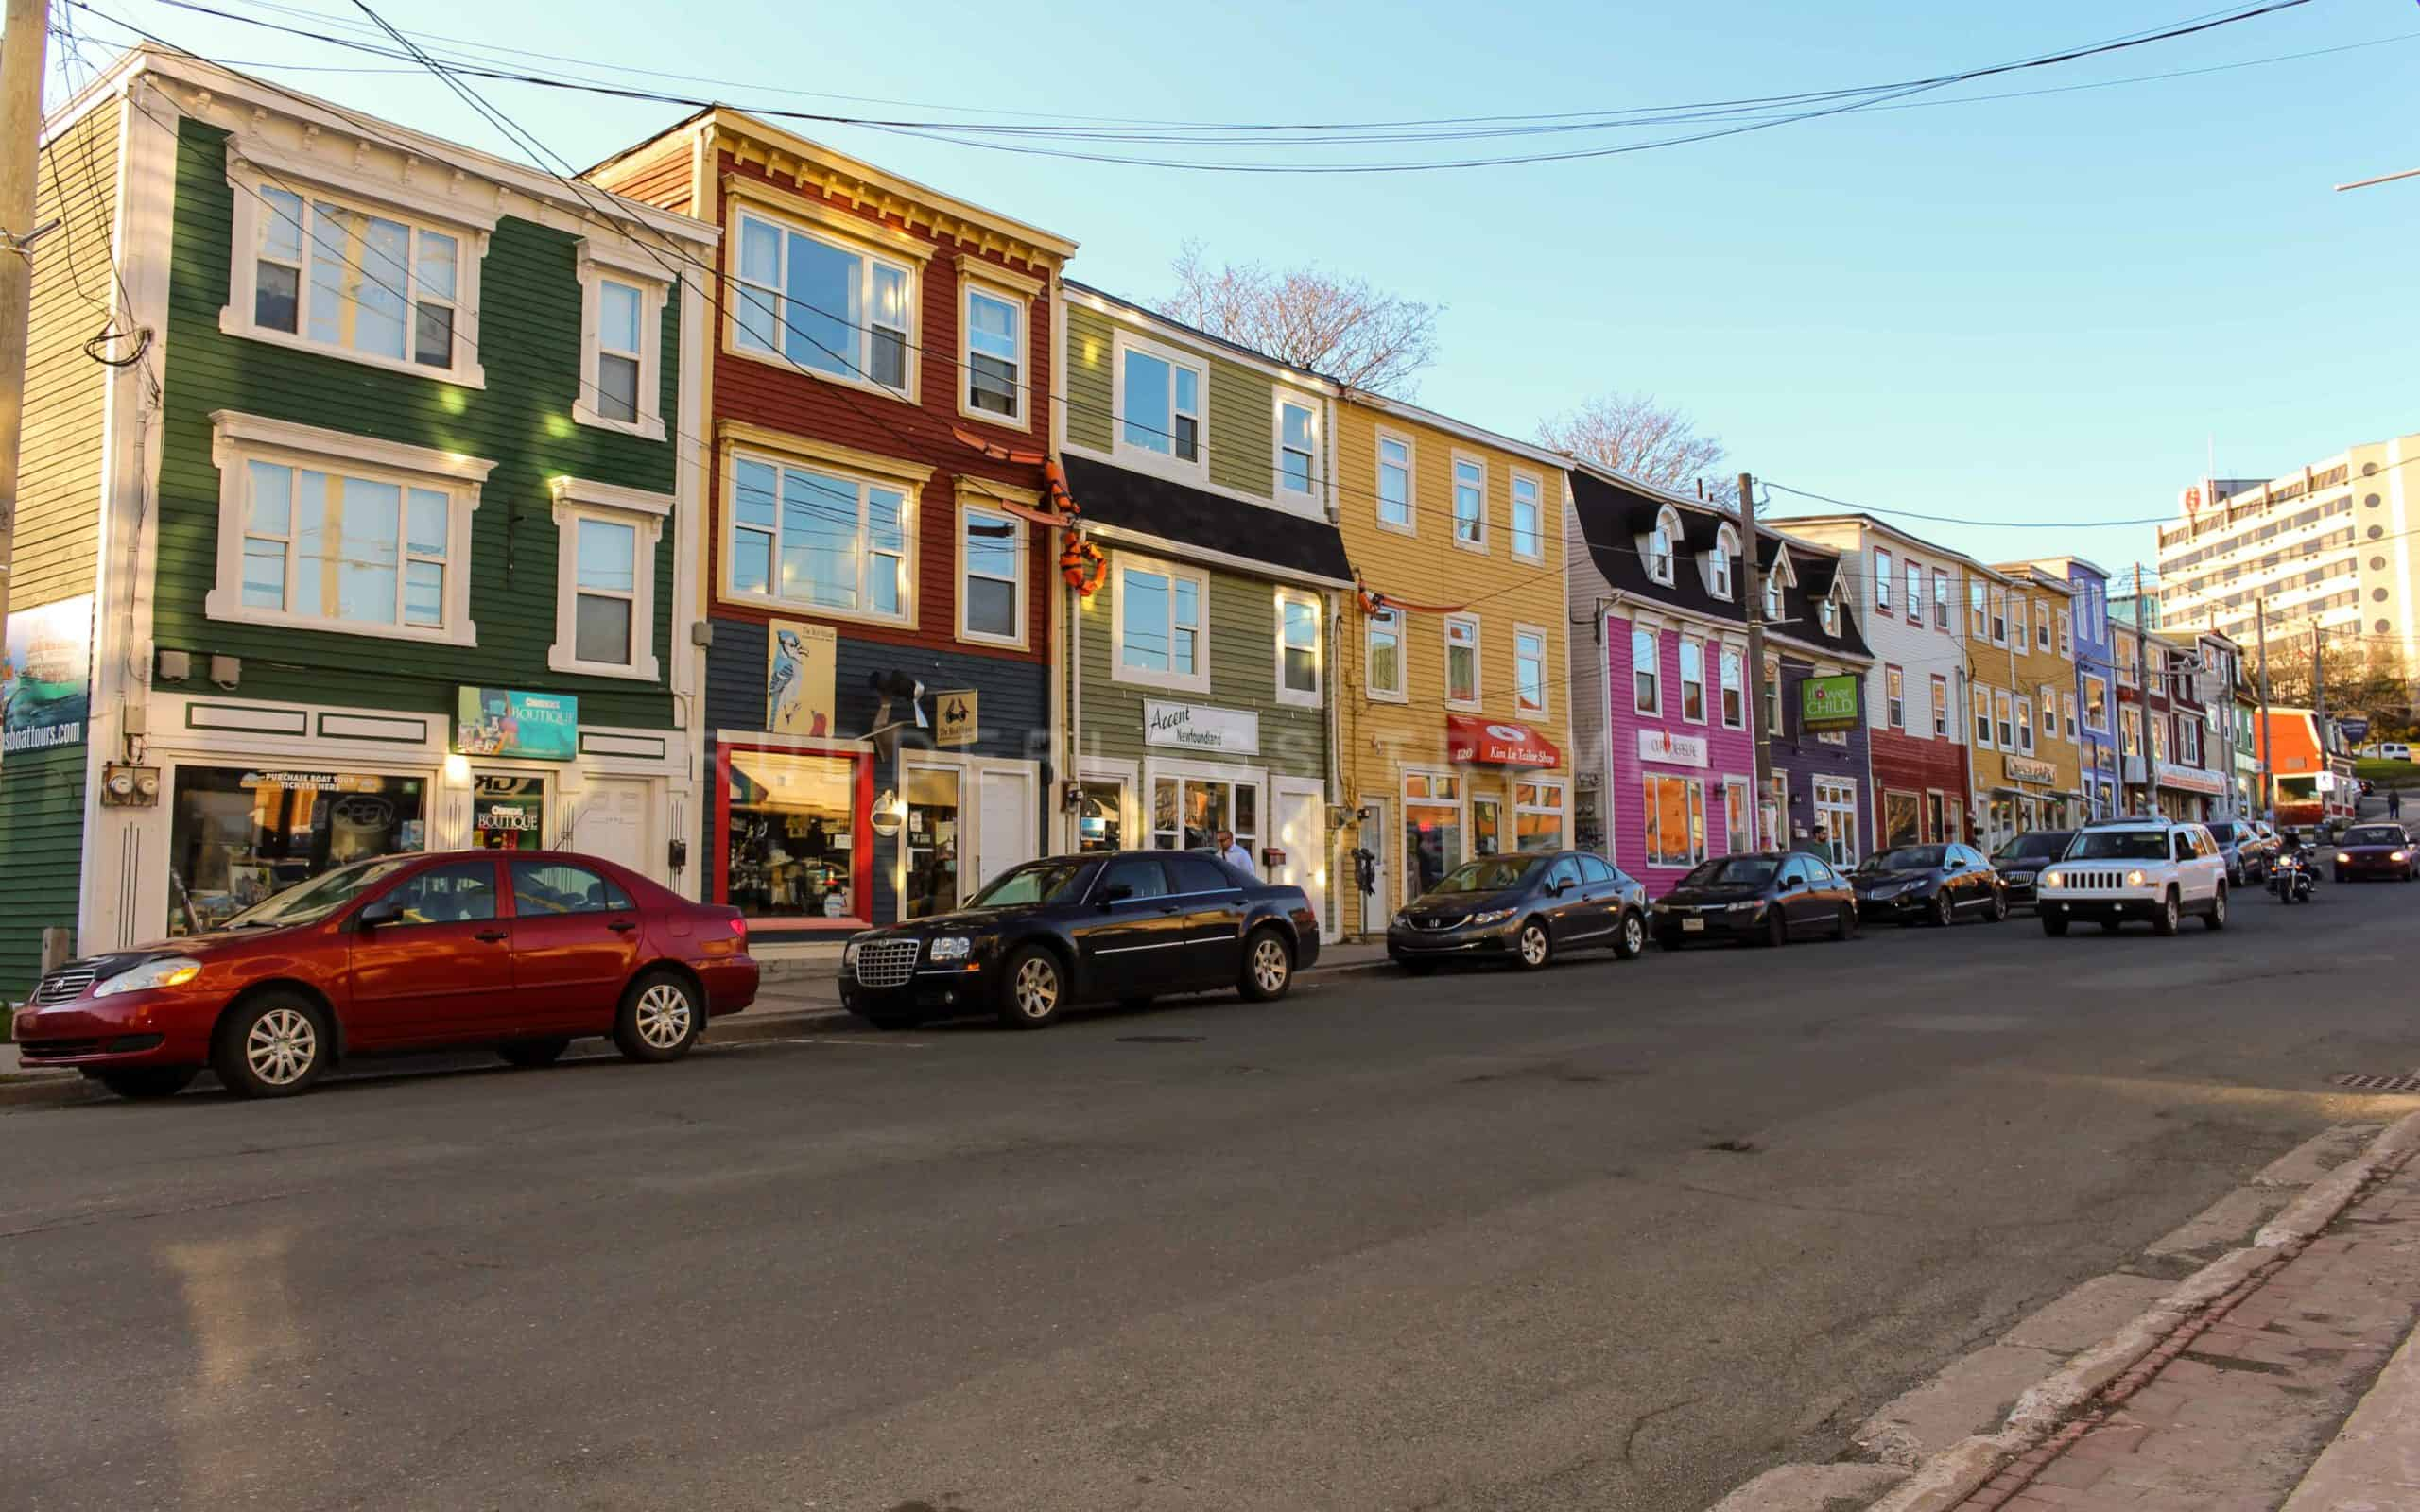 Things to Do in St. John's